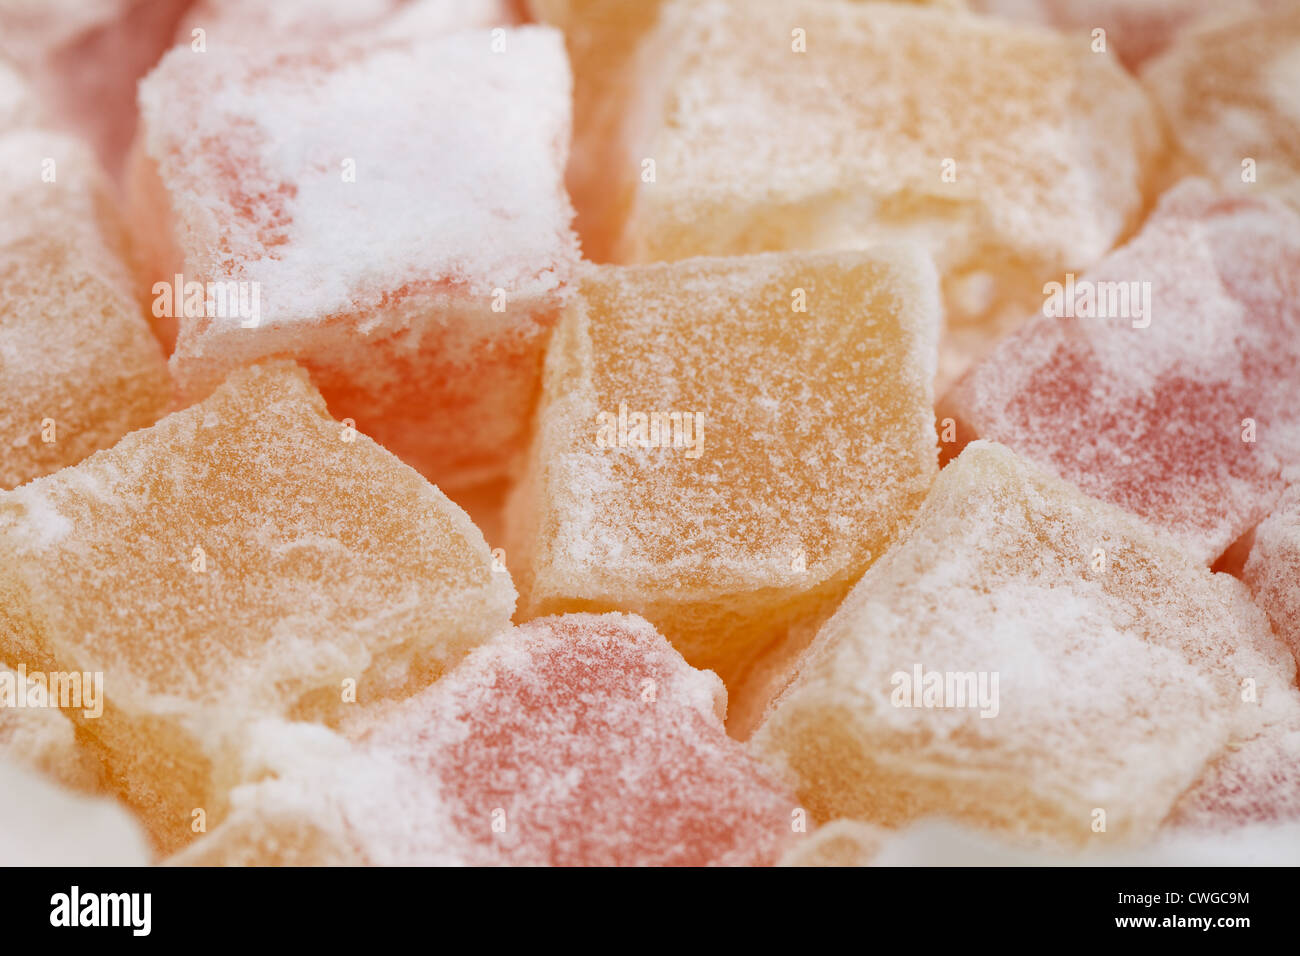 turkish sweet delight, rose and yellow, dusted with caster sugar - Stock Image